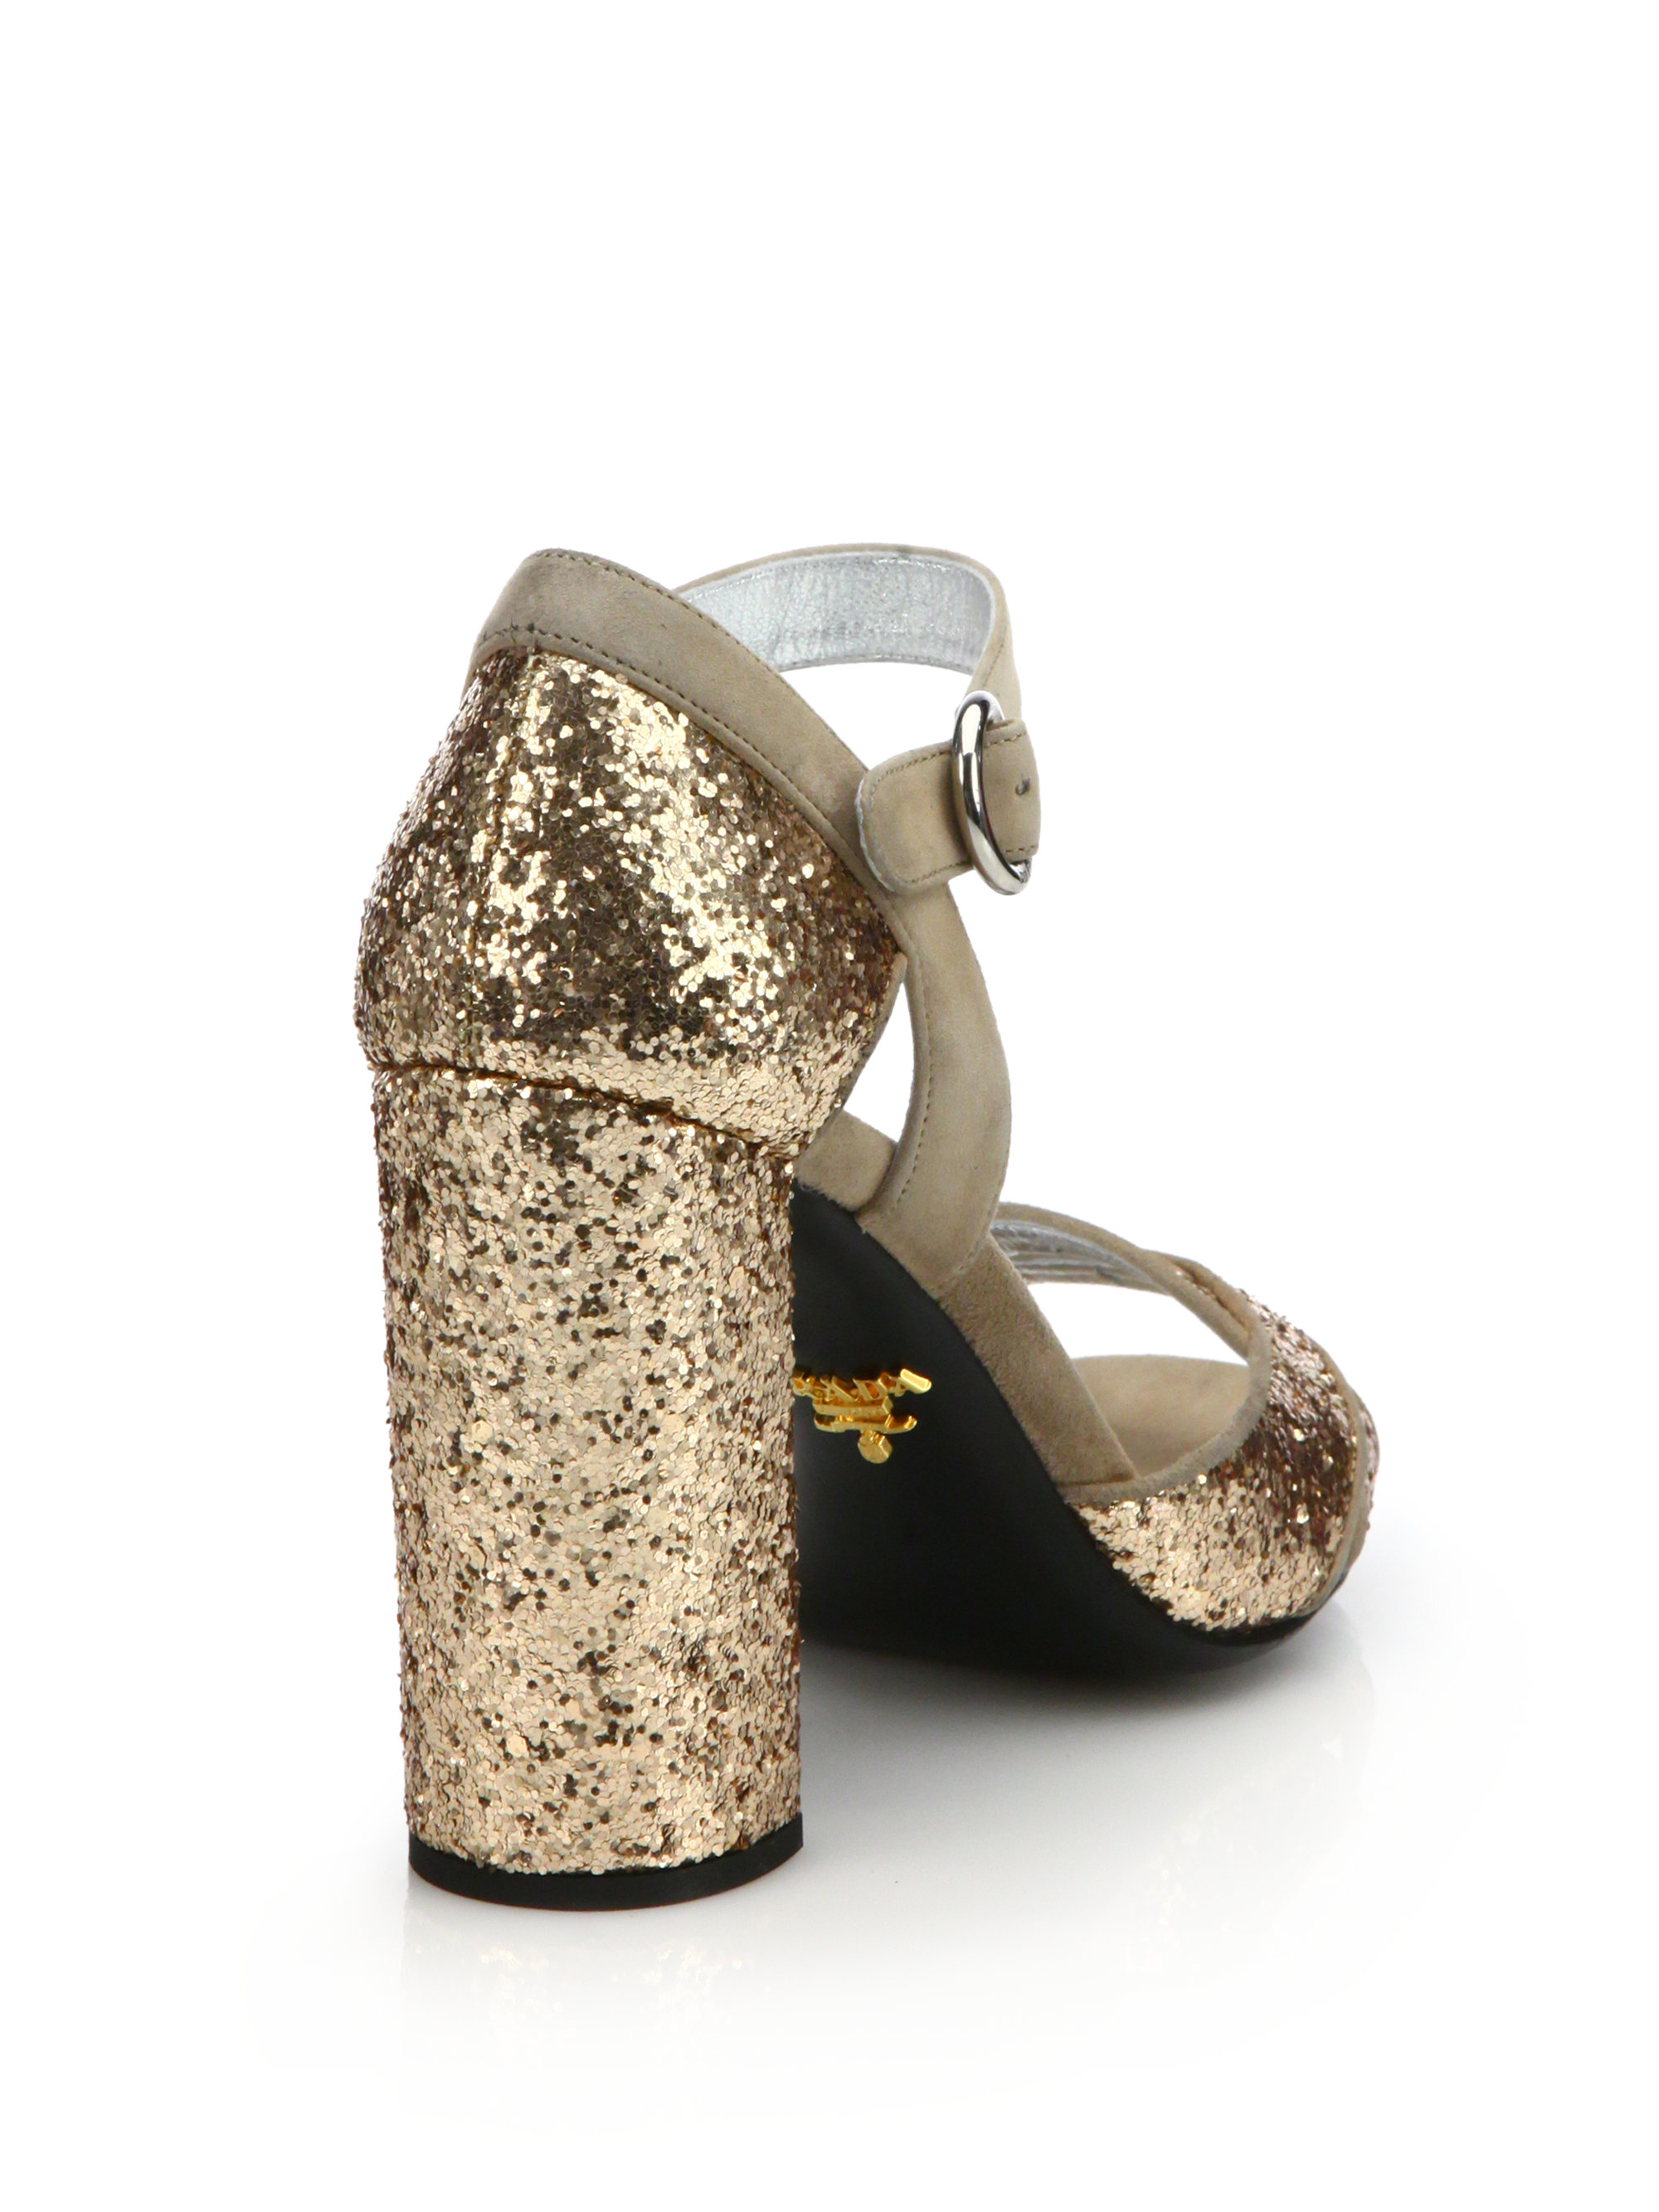 Prada Glitter Sandals Free Shipping New Buy Cheap From China Cheap Sale Websites Outlet Cheap Outlet Locations ollGJwT